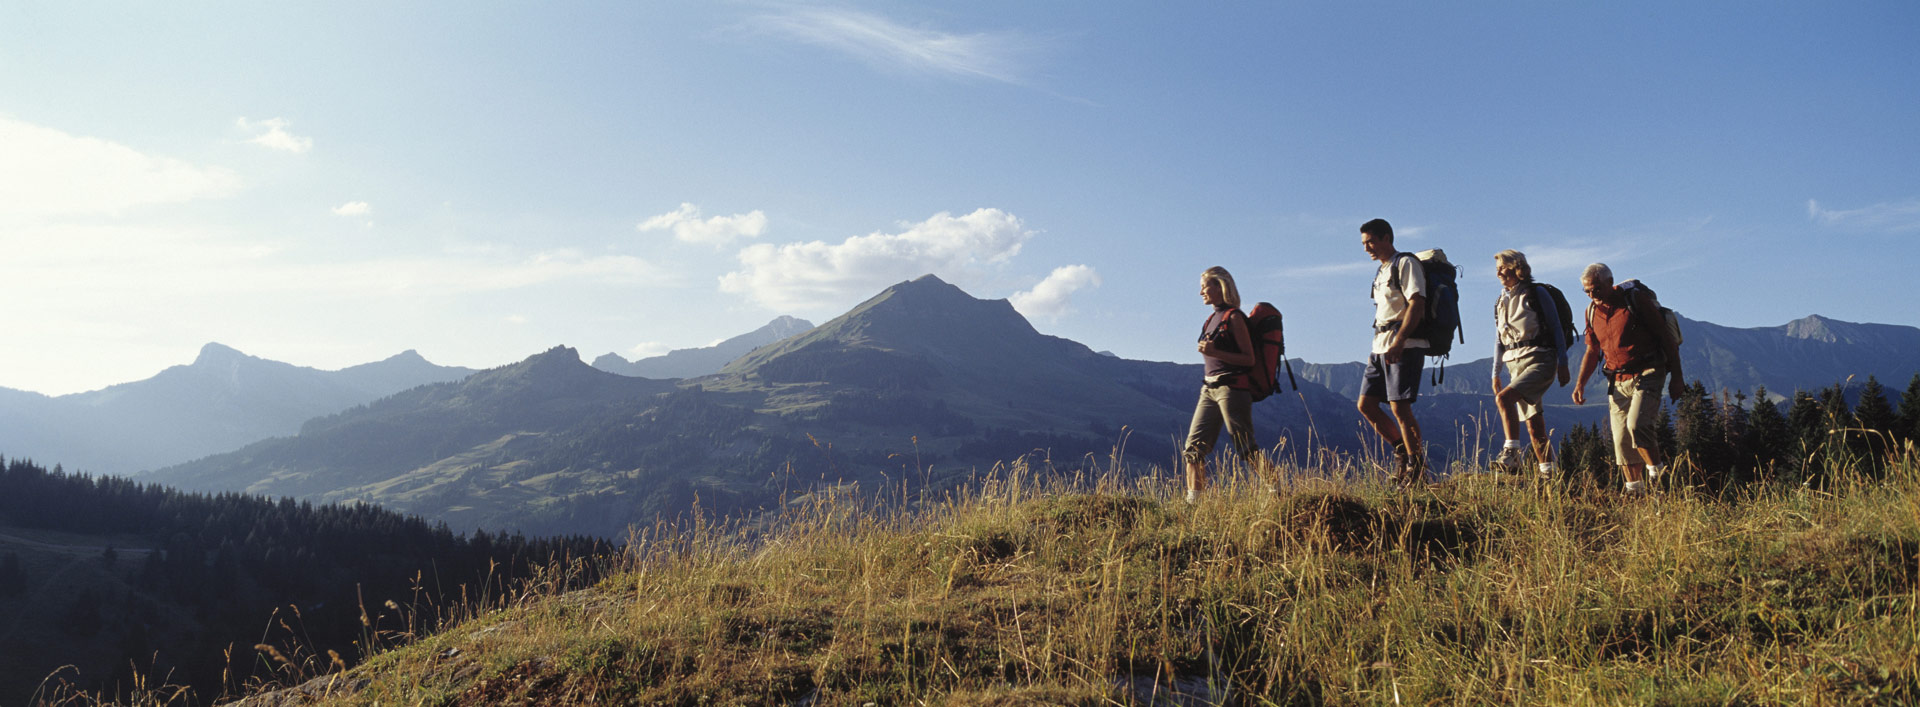 A family hiking on a financial journey